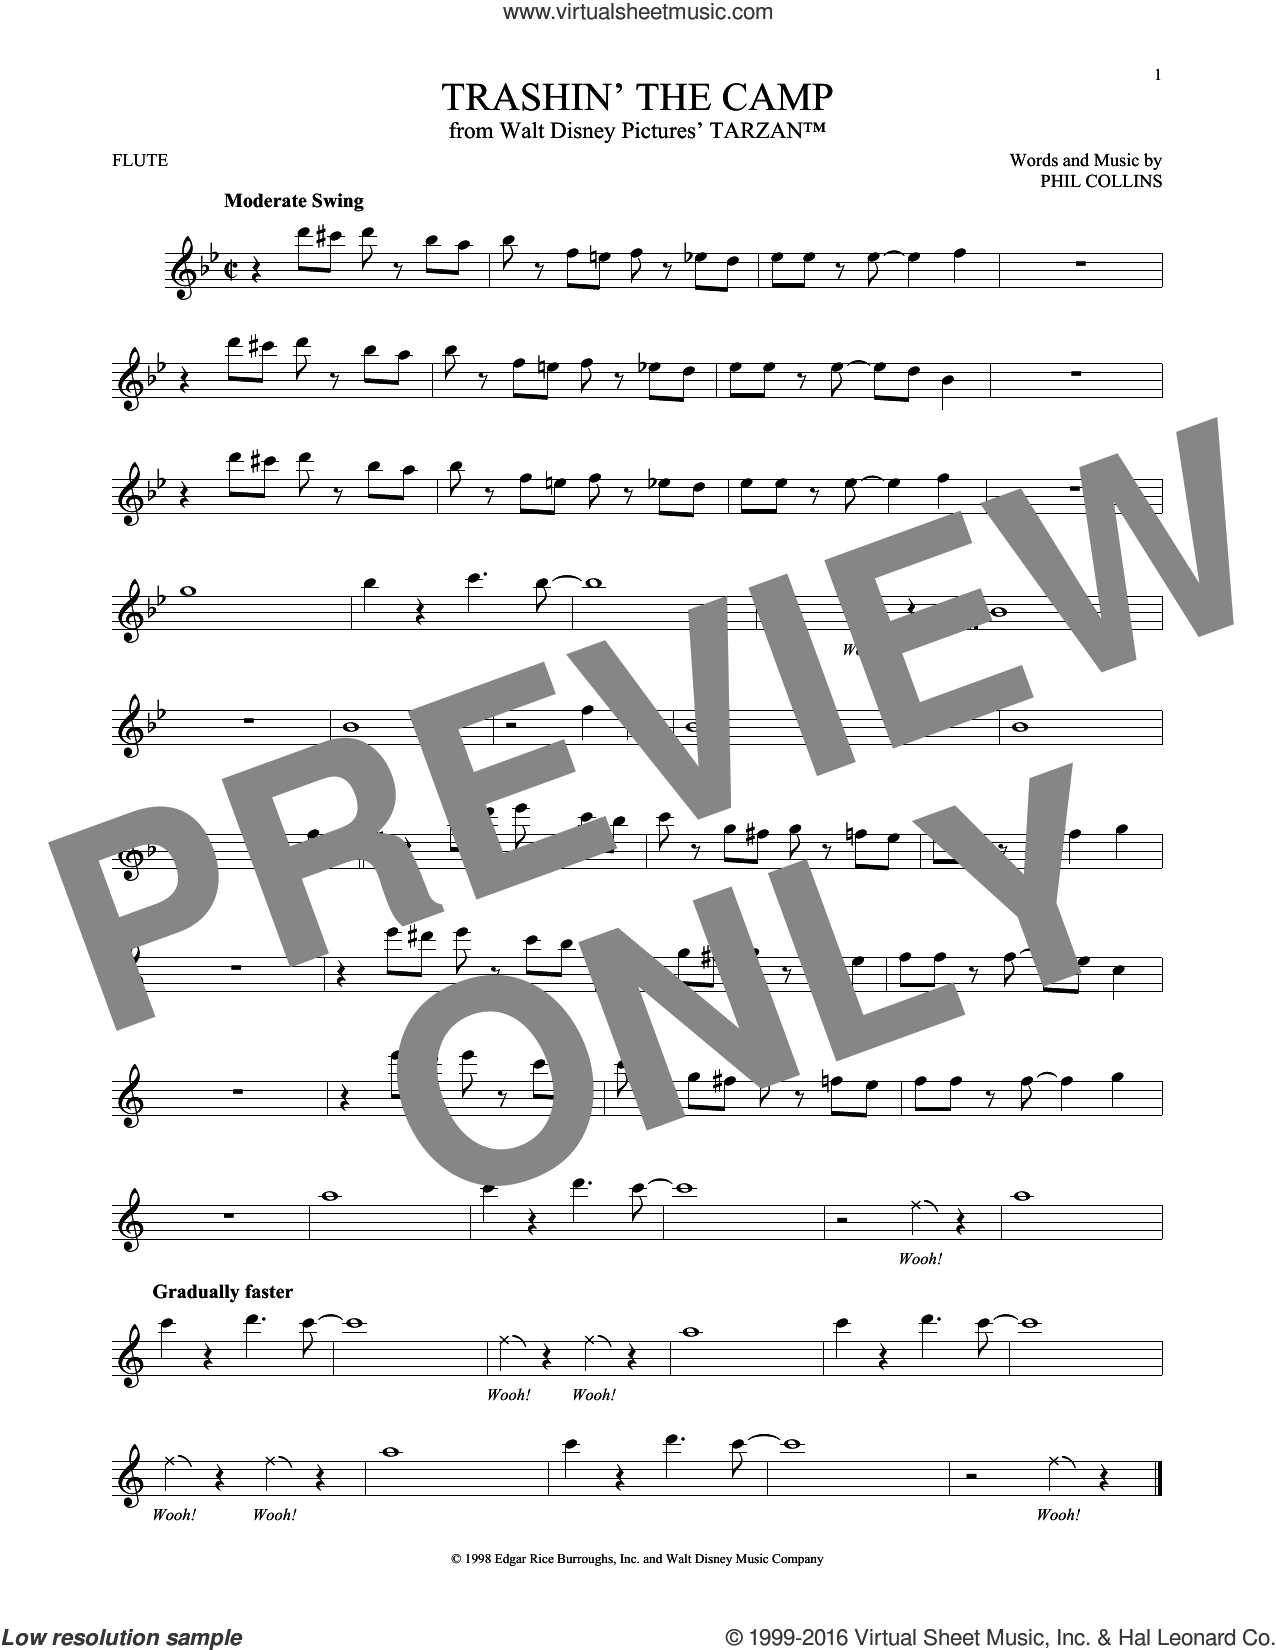 Trashin' The Camp sheet music for flute solo by Phil Collins. Score Image Preview.